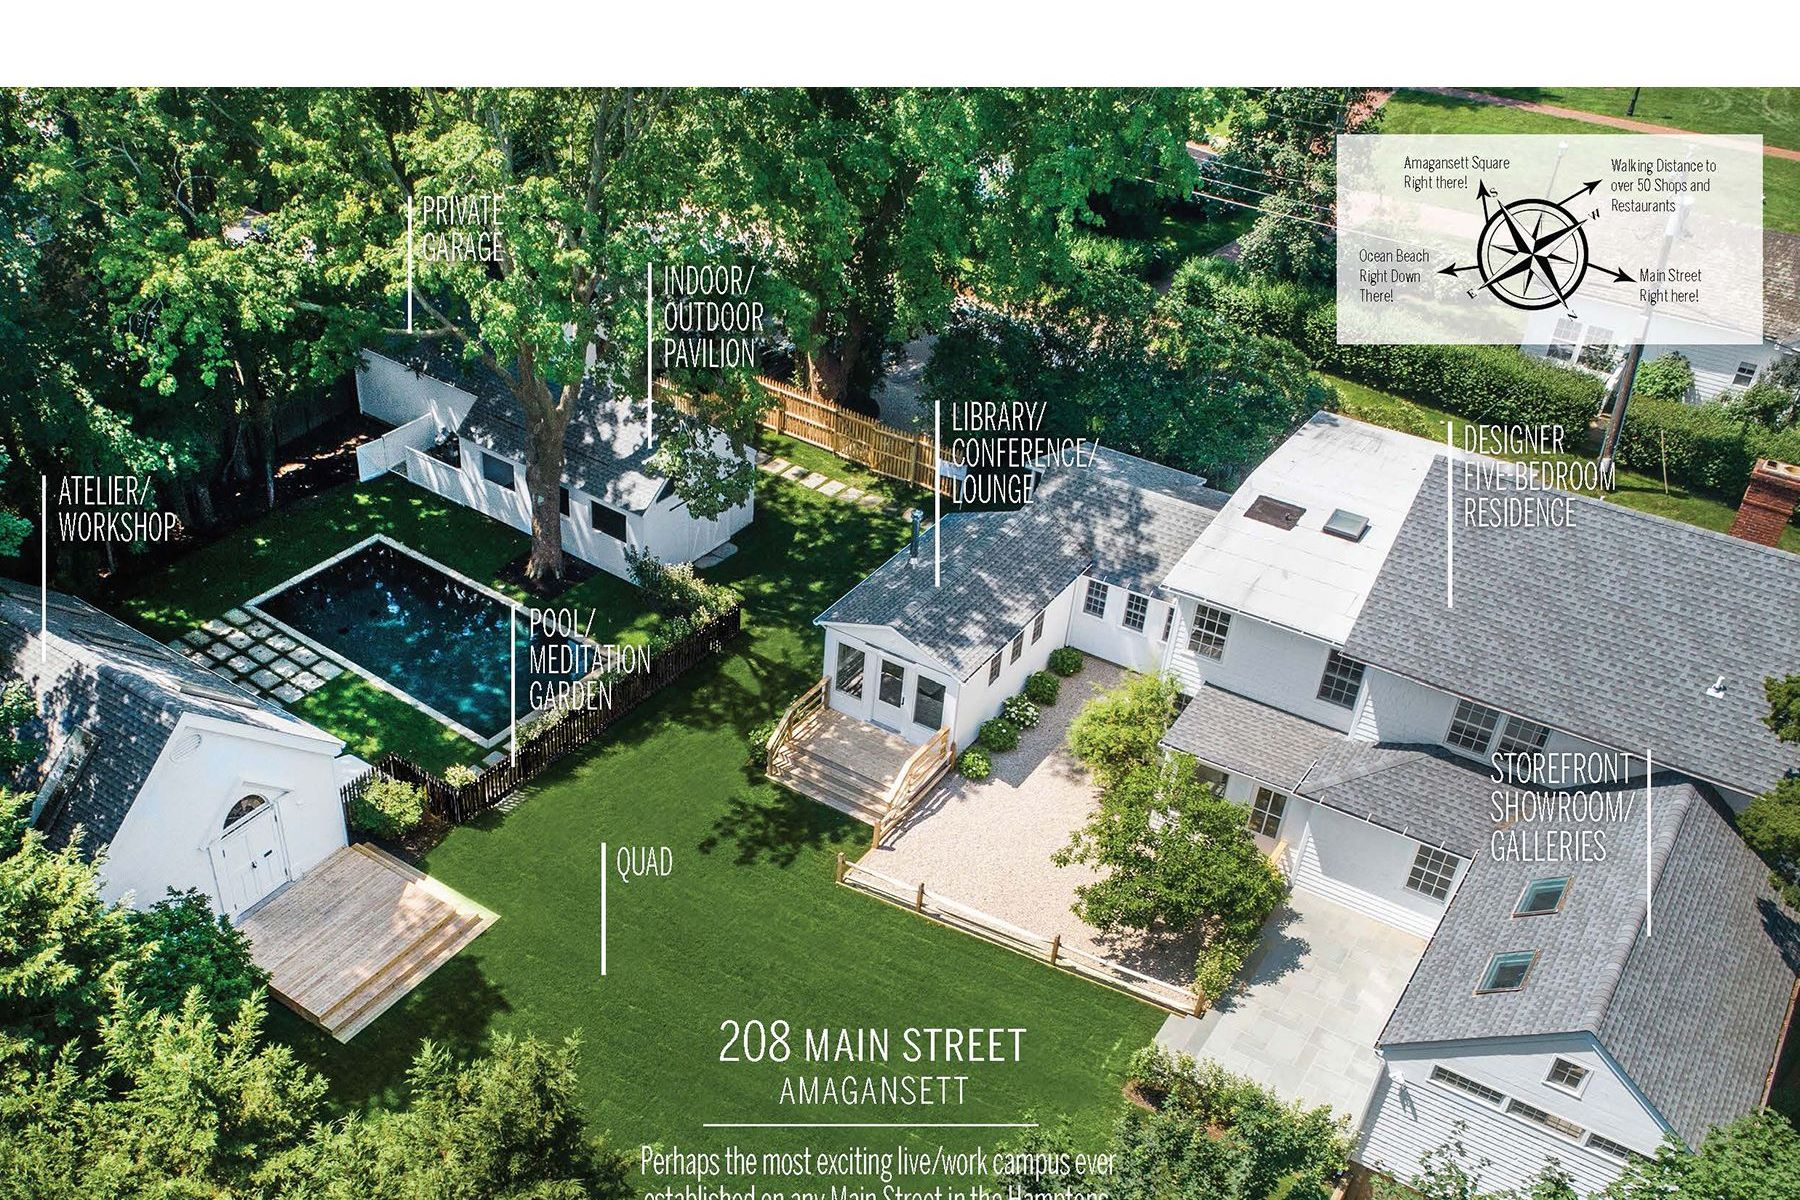 Single Family Homes for Sale at In-Town Amg Live/Work Campus with Pool 208 Main Street Amagansett, New York 11930 United States